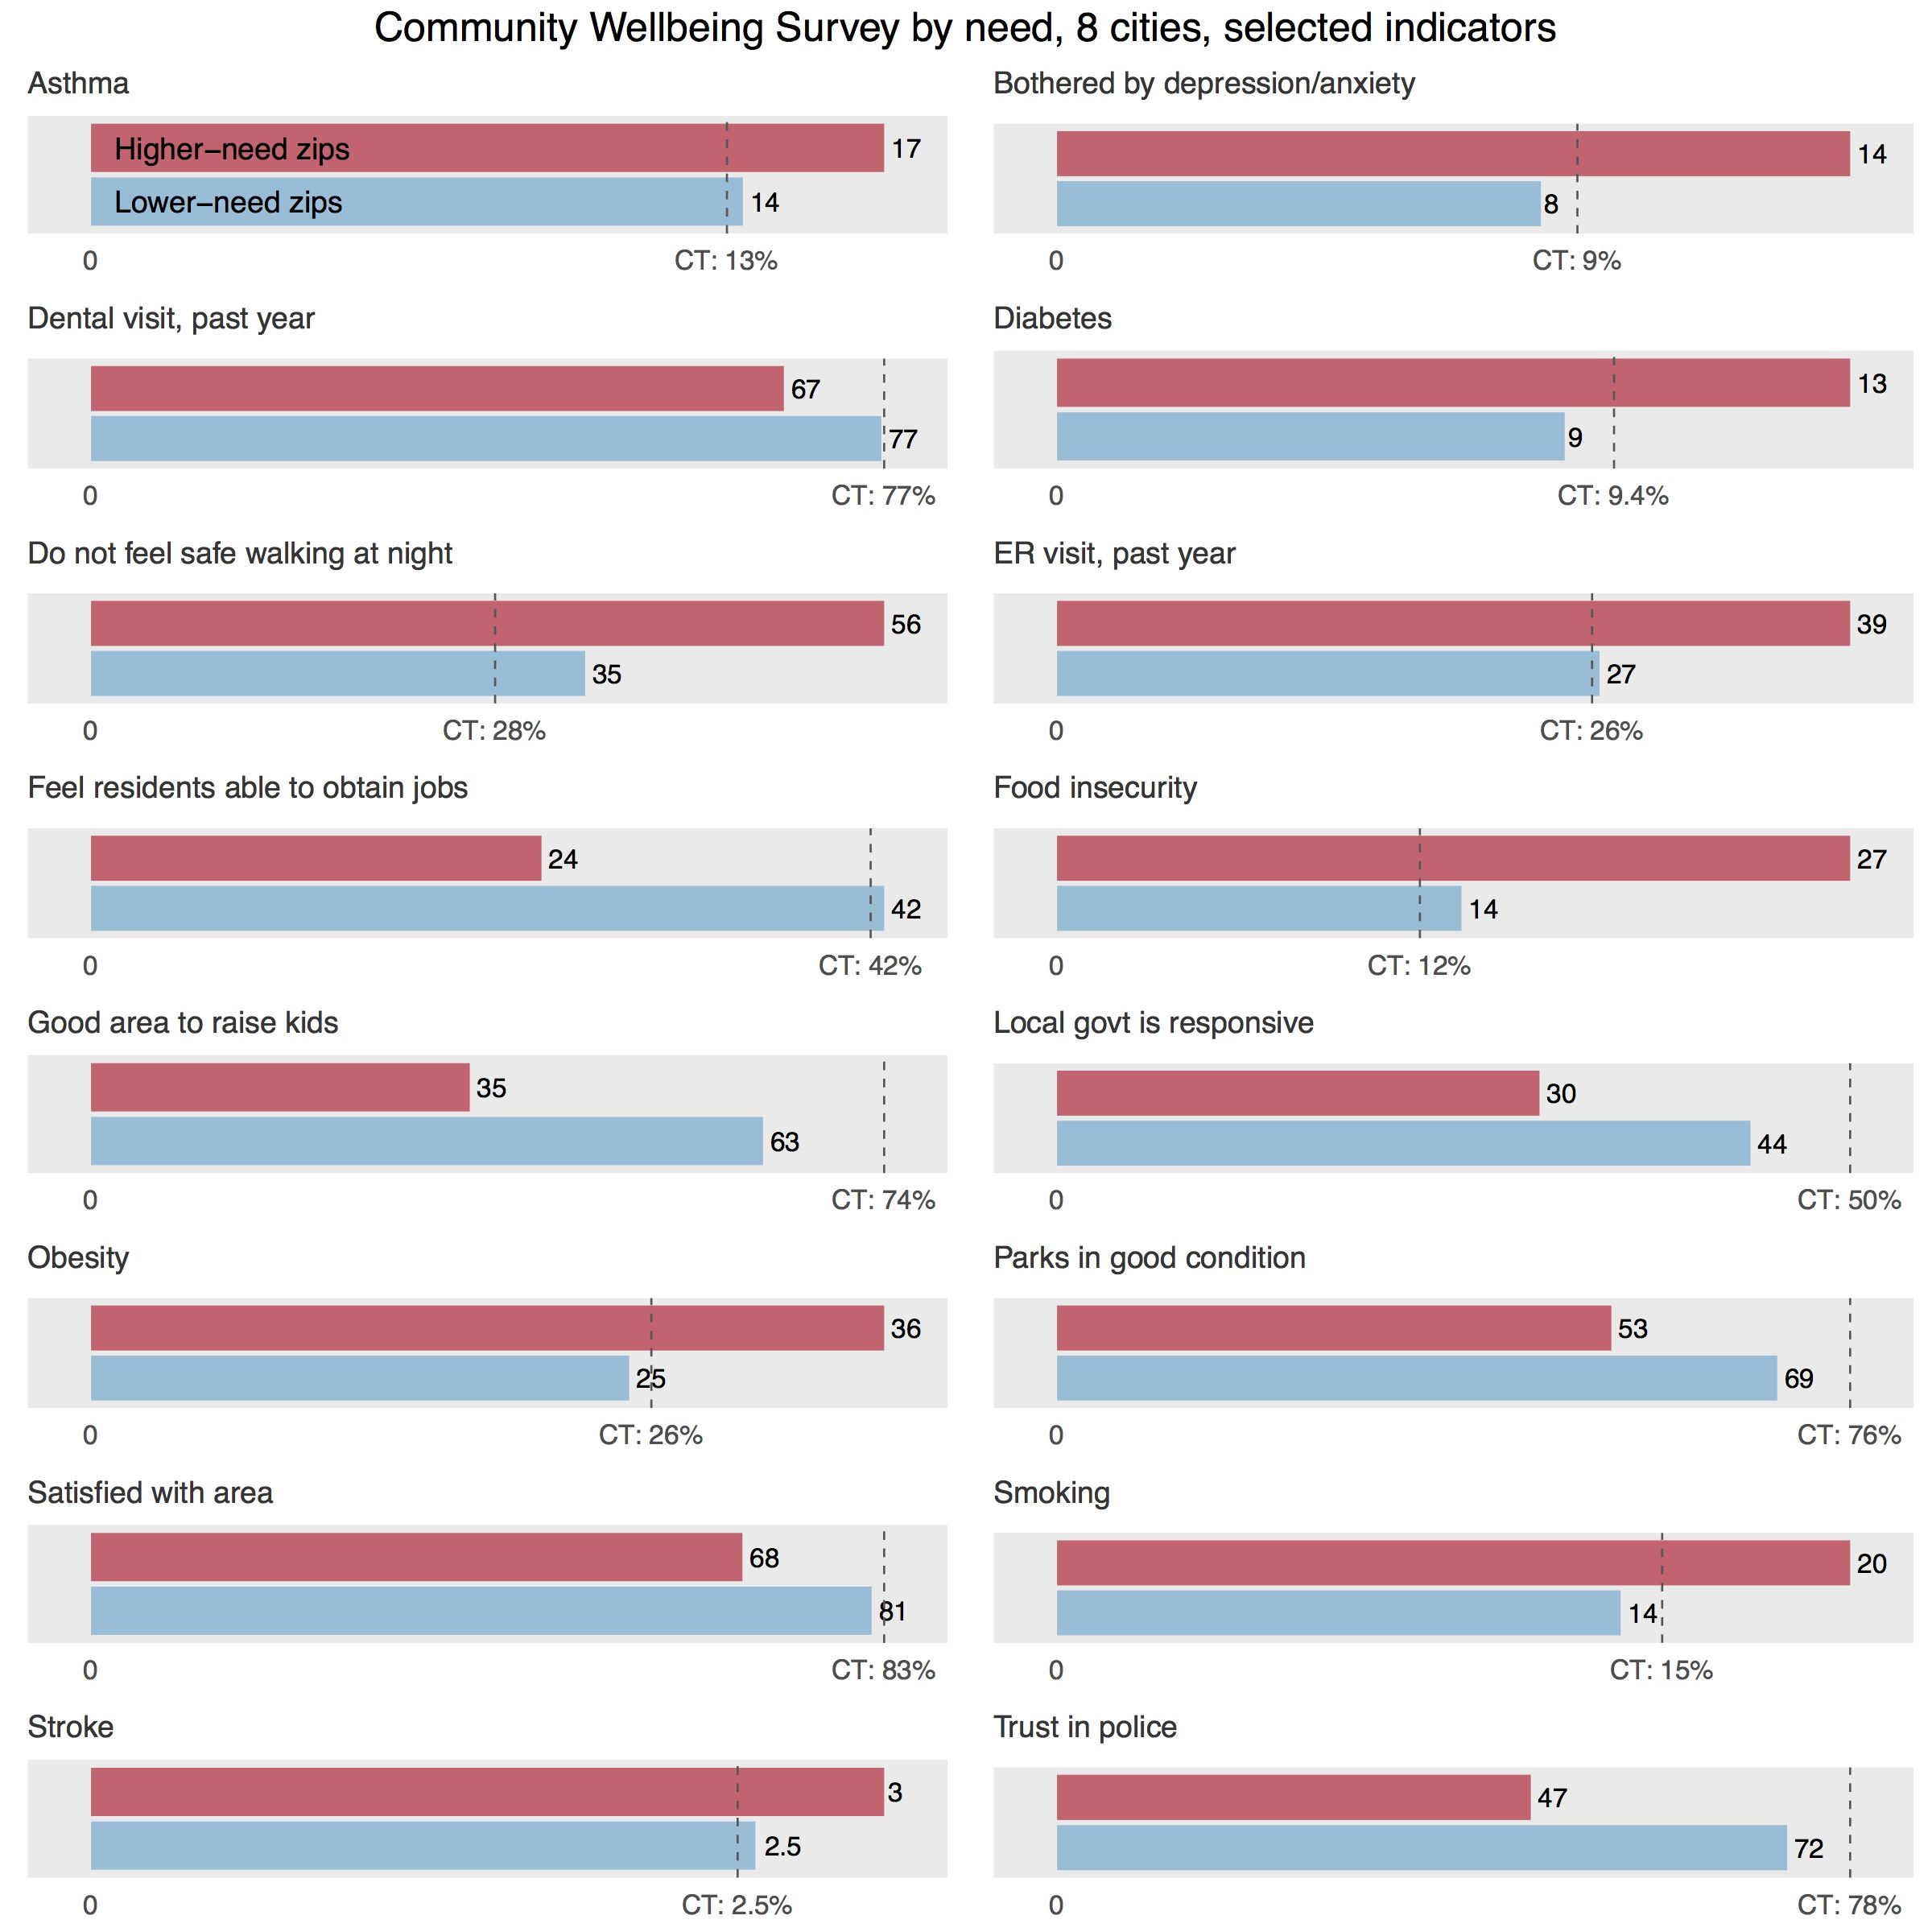 Community Wellbeing Survey by zip code all CDC 500 Cities Connecticut Data